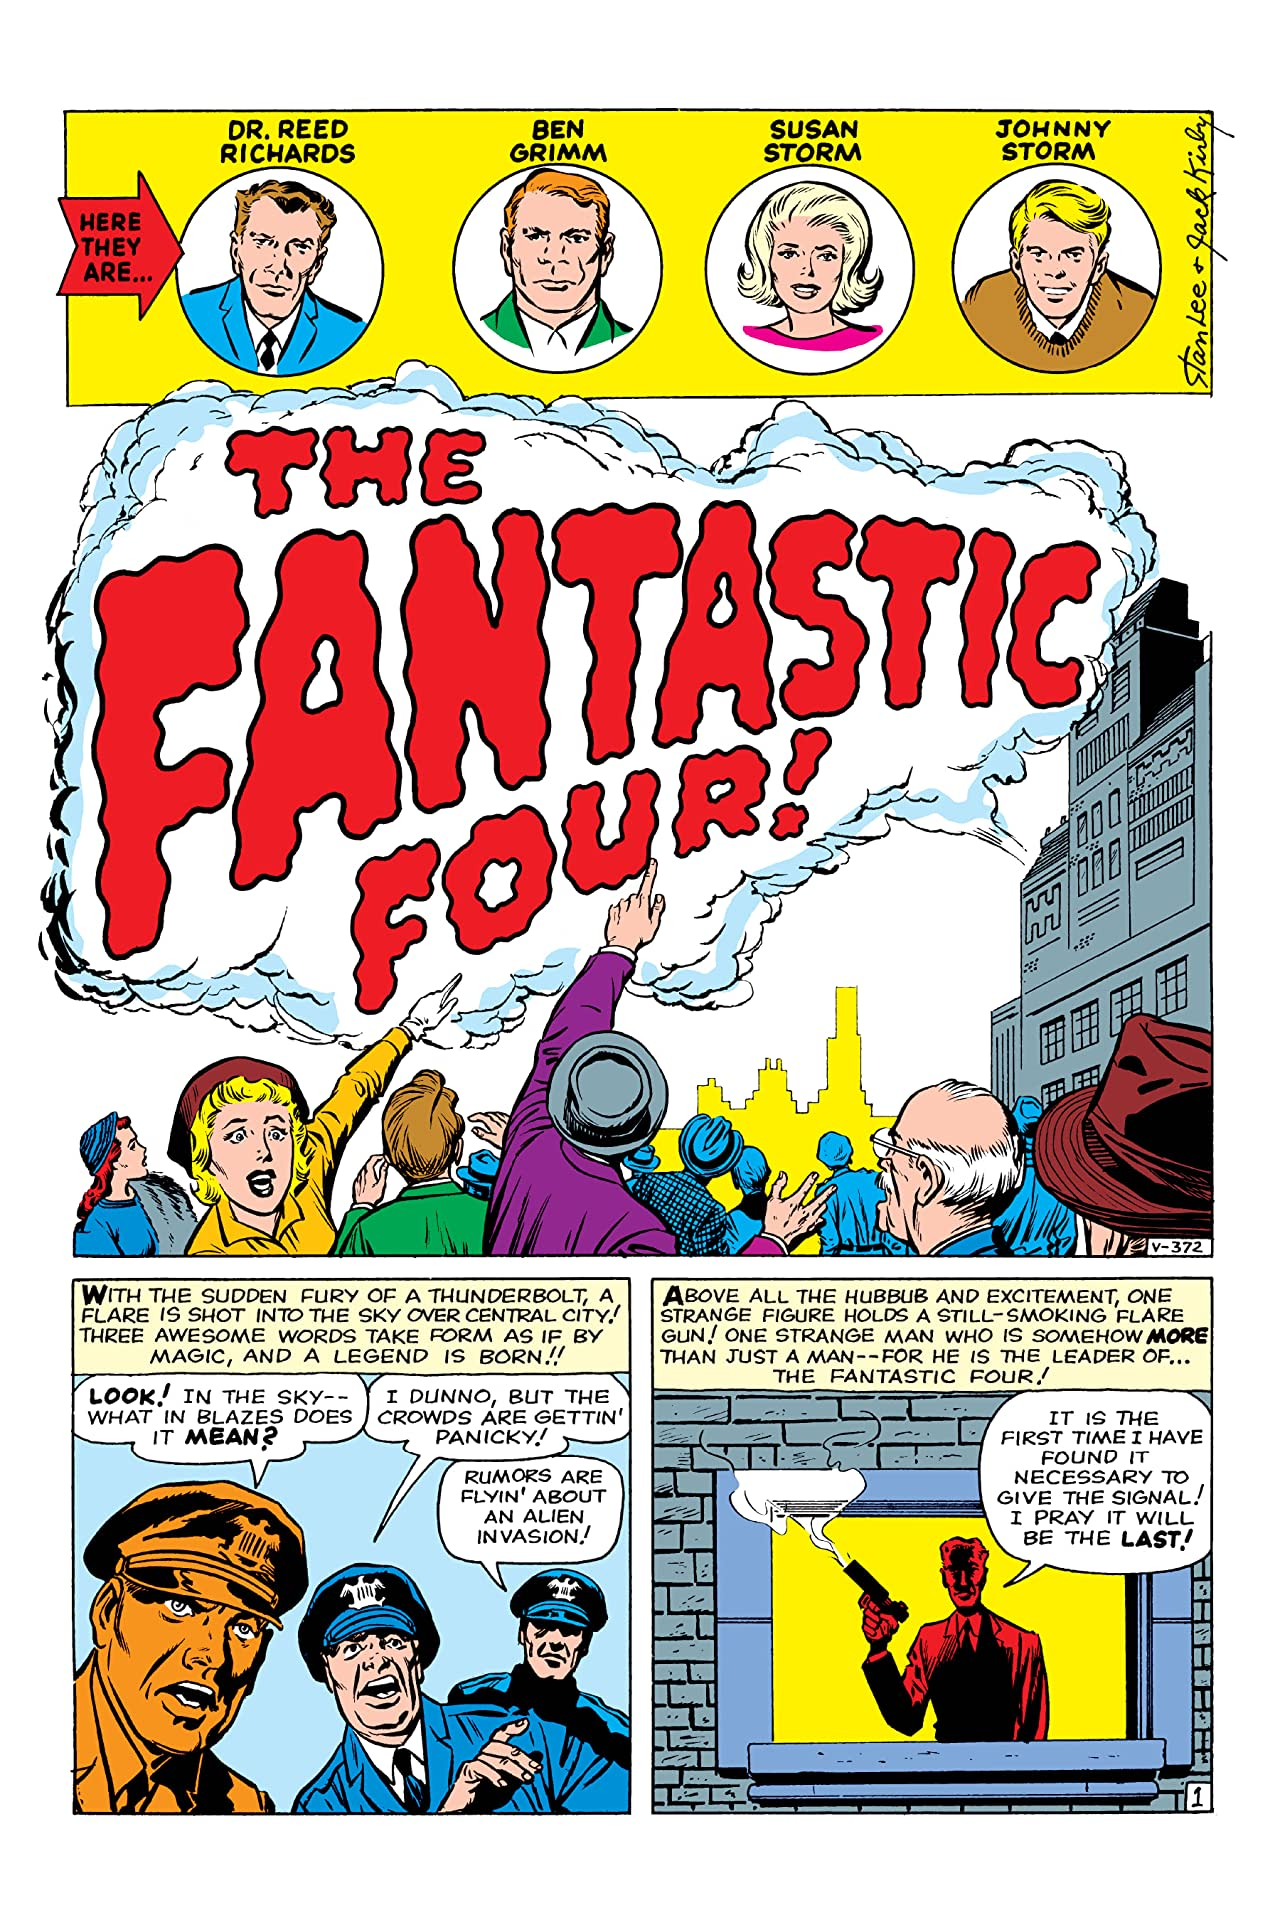 Mighty Marvel Masterworks: The Fantastic Four Vol. 1: The World's Greatest Heroes